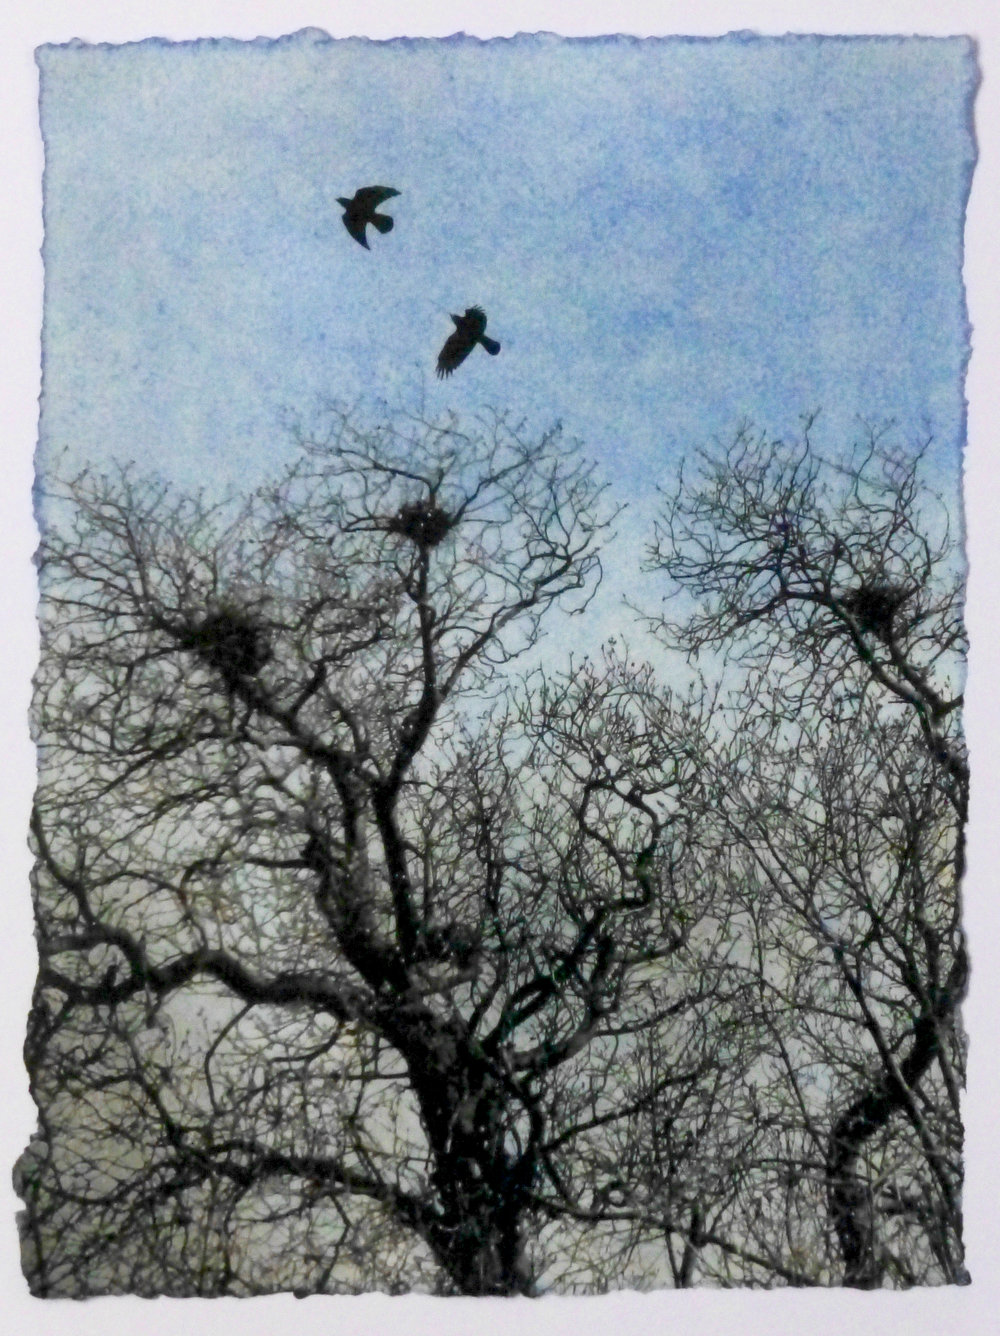 Artist: Luella Martin  Title: April  Medium: Oil paint and solar etching  Size: 25 x 19 cm  Price: £240 fr, £160 u/f